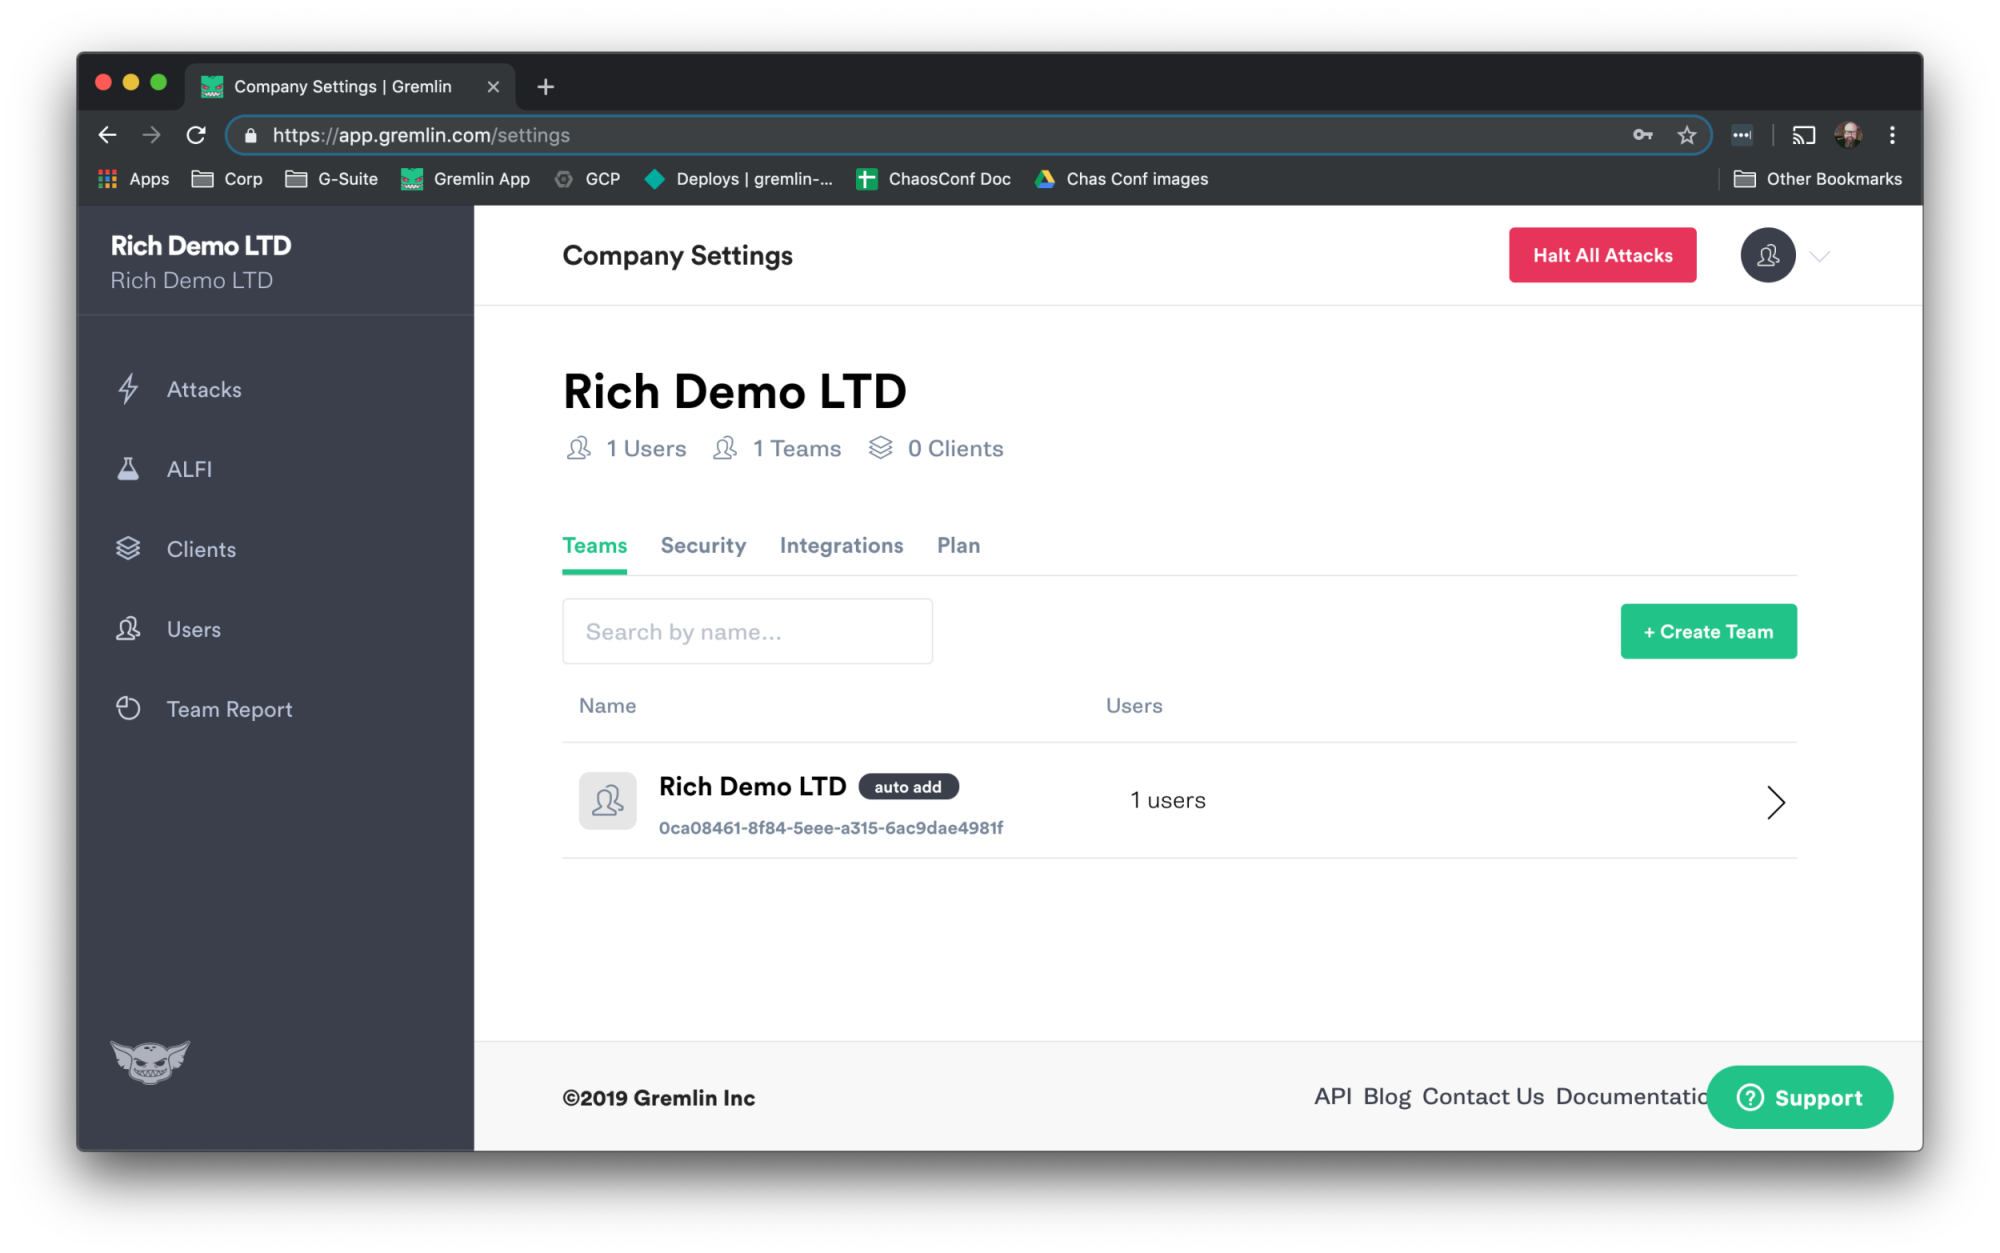 Company Settings page